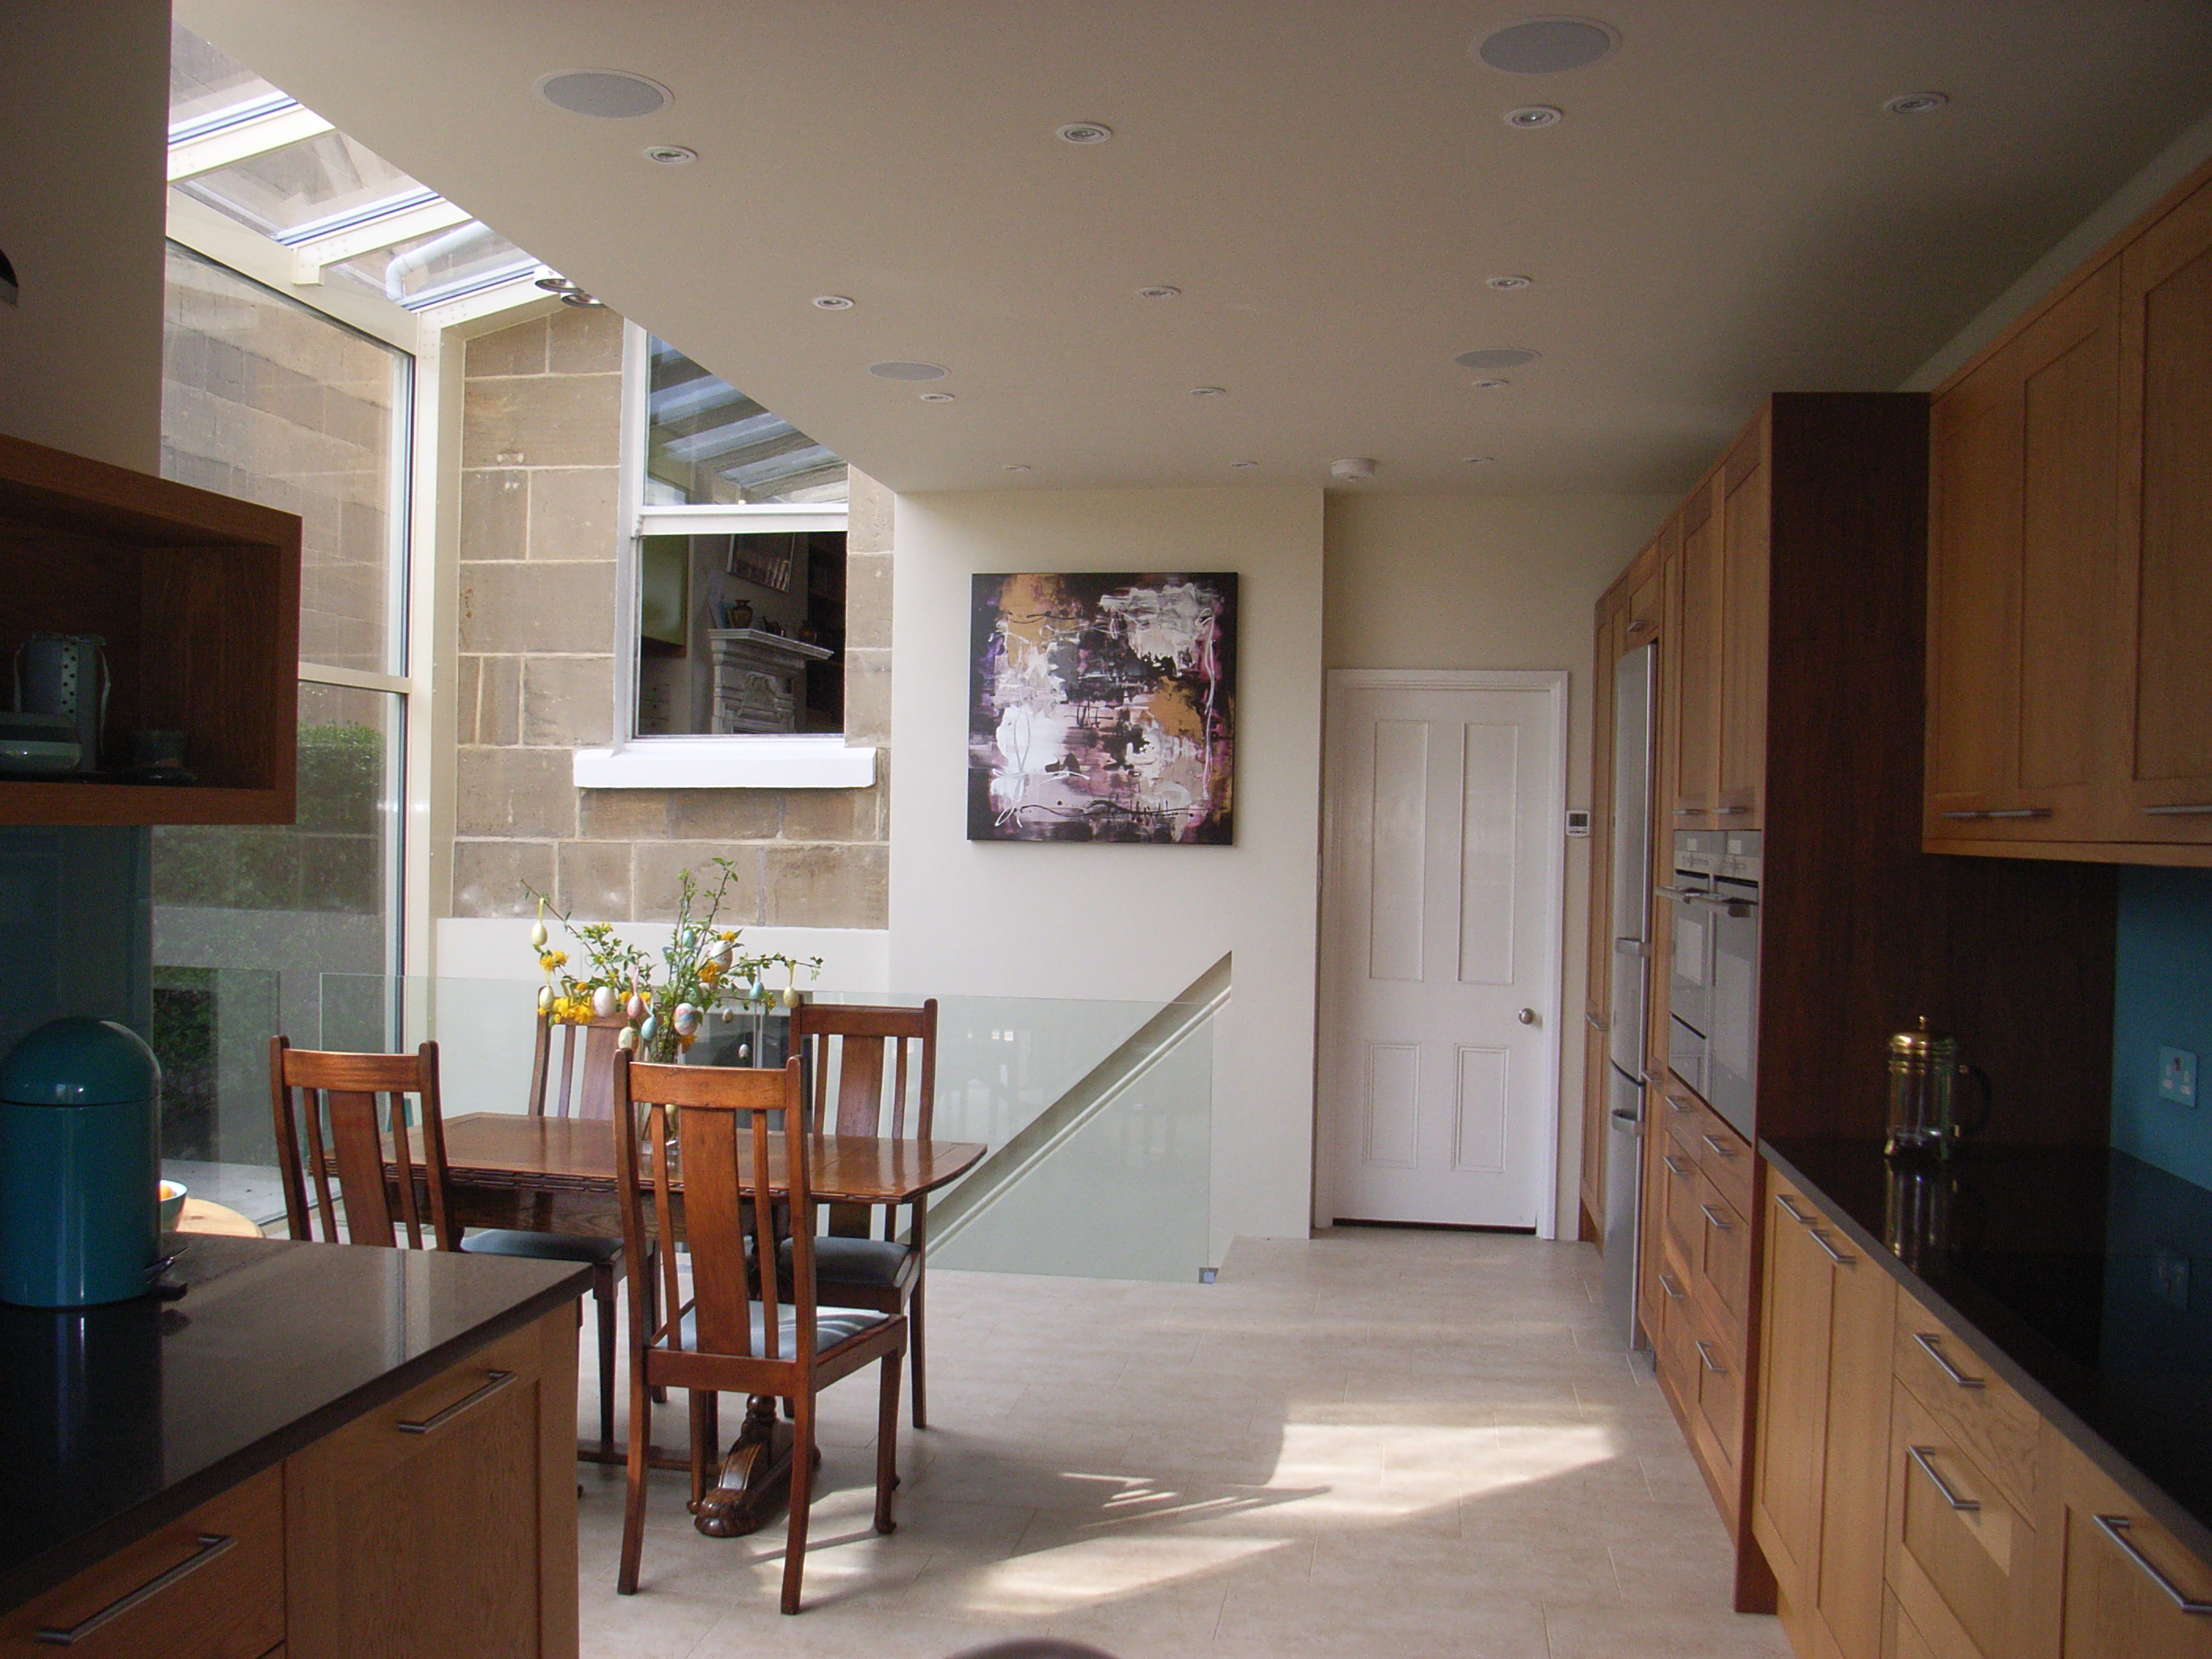 Conservatory Roof Conversion >> Glass Extension and Basement Conversion in Bath - Style Within